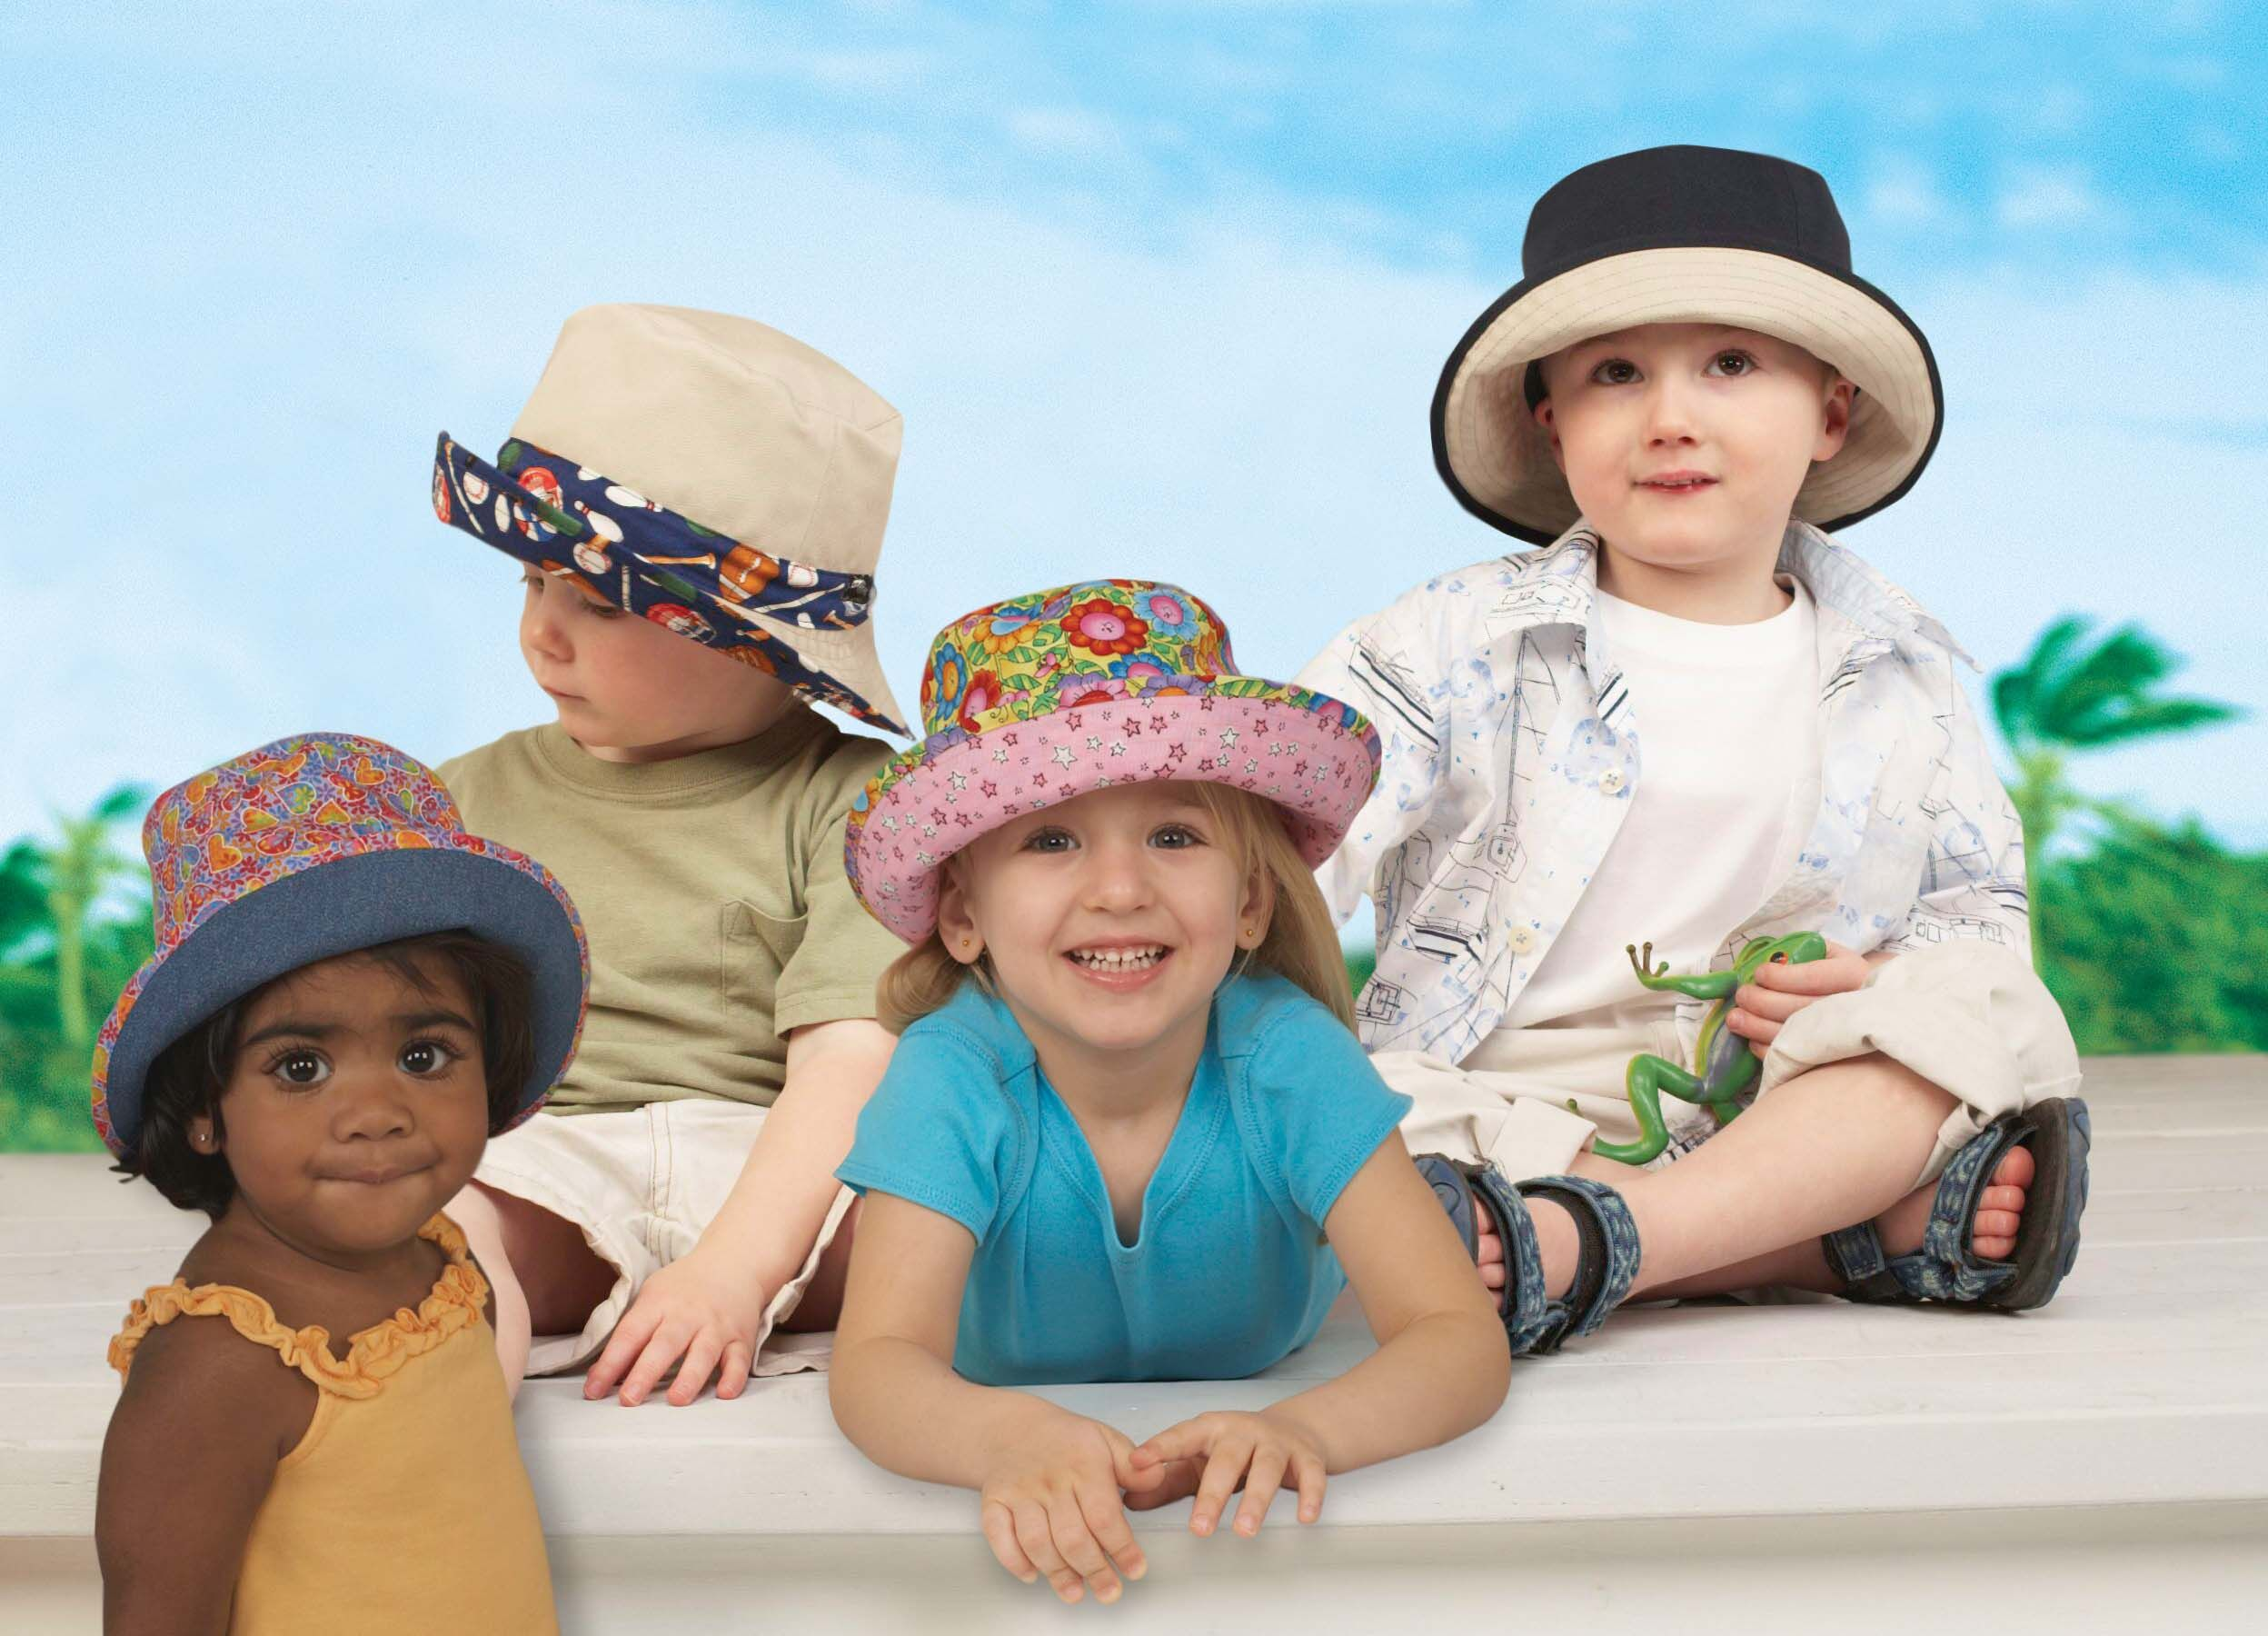 b692f9c7db45b Tilley Hats available at Head over Heels